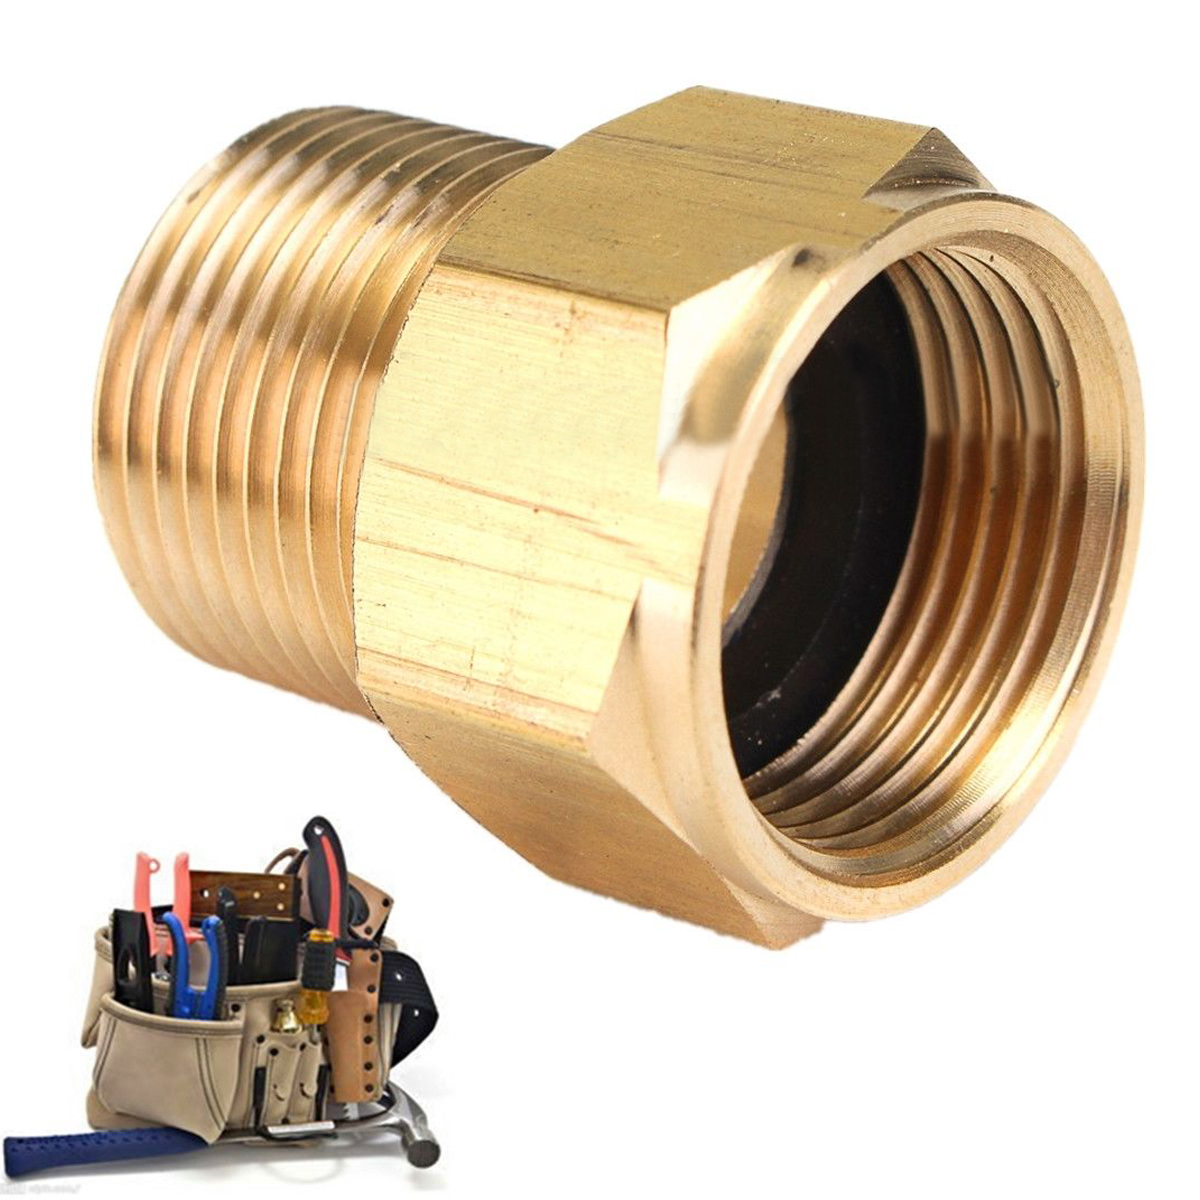 1pc Durable Brass M22 Male * M22 Female Hose Coupling Adapter Connector Screw Fittings For HD HDS Pressure Washer 31*14mm Mayitr 59 brass freon high pressure refrigerator of copper adapter connector female inner diameter 24mm to male 11mm